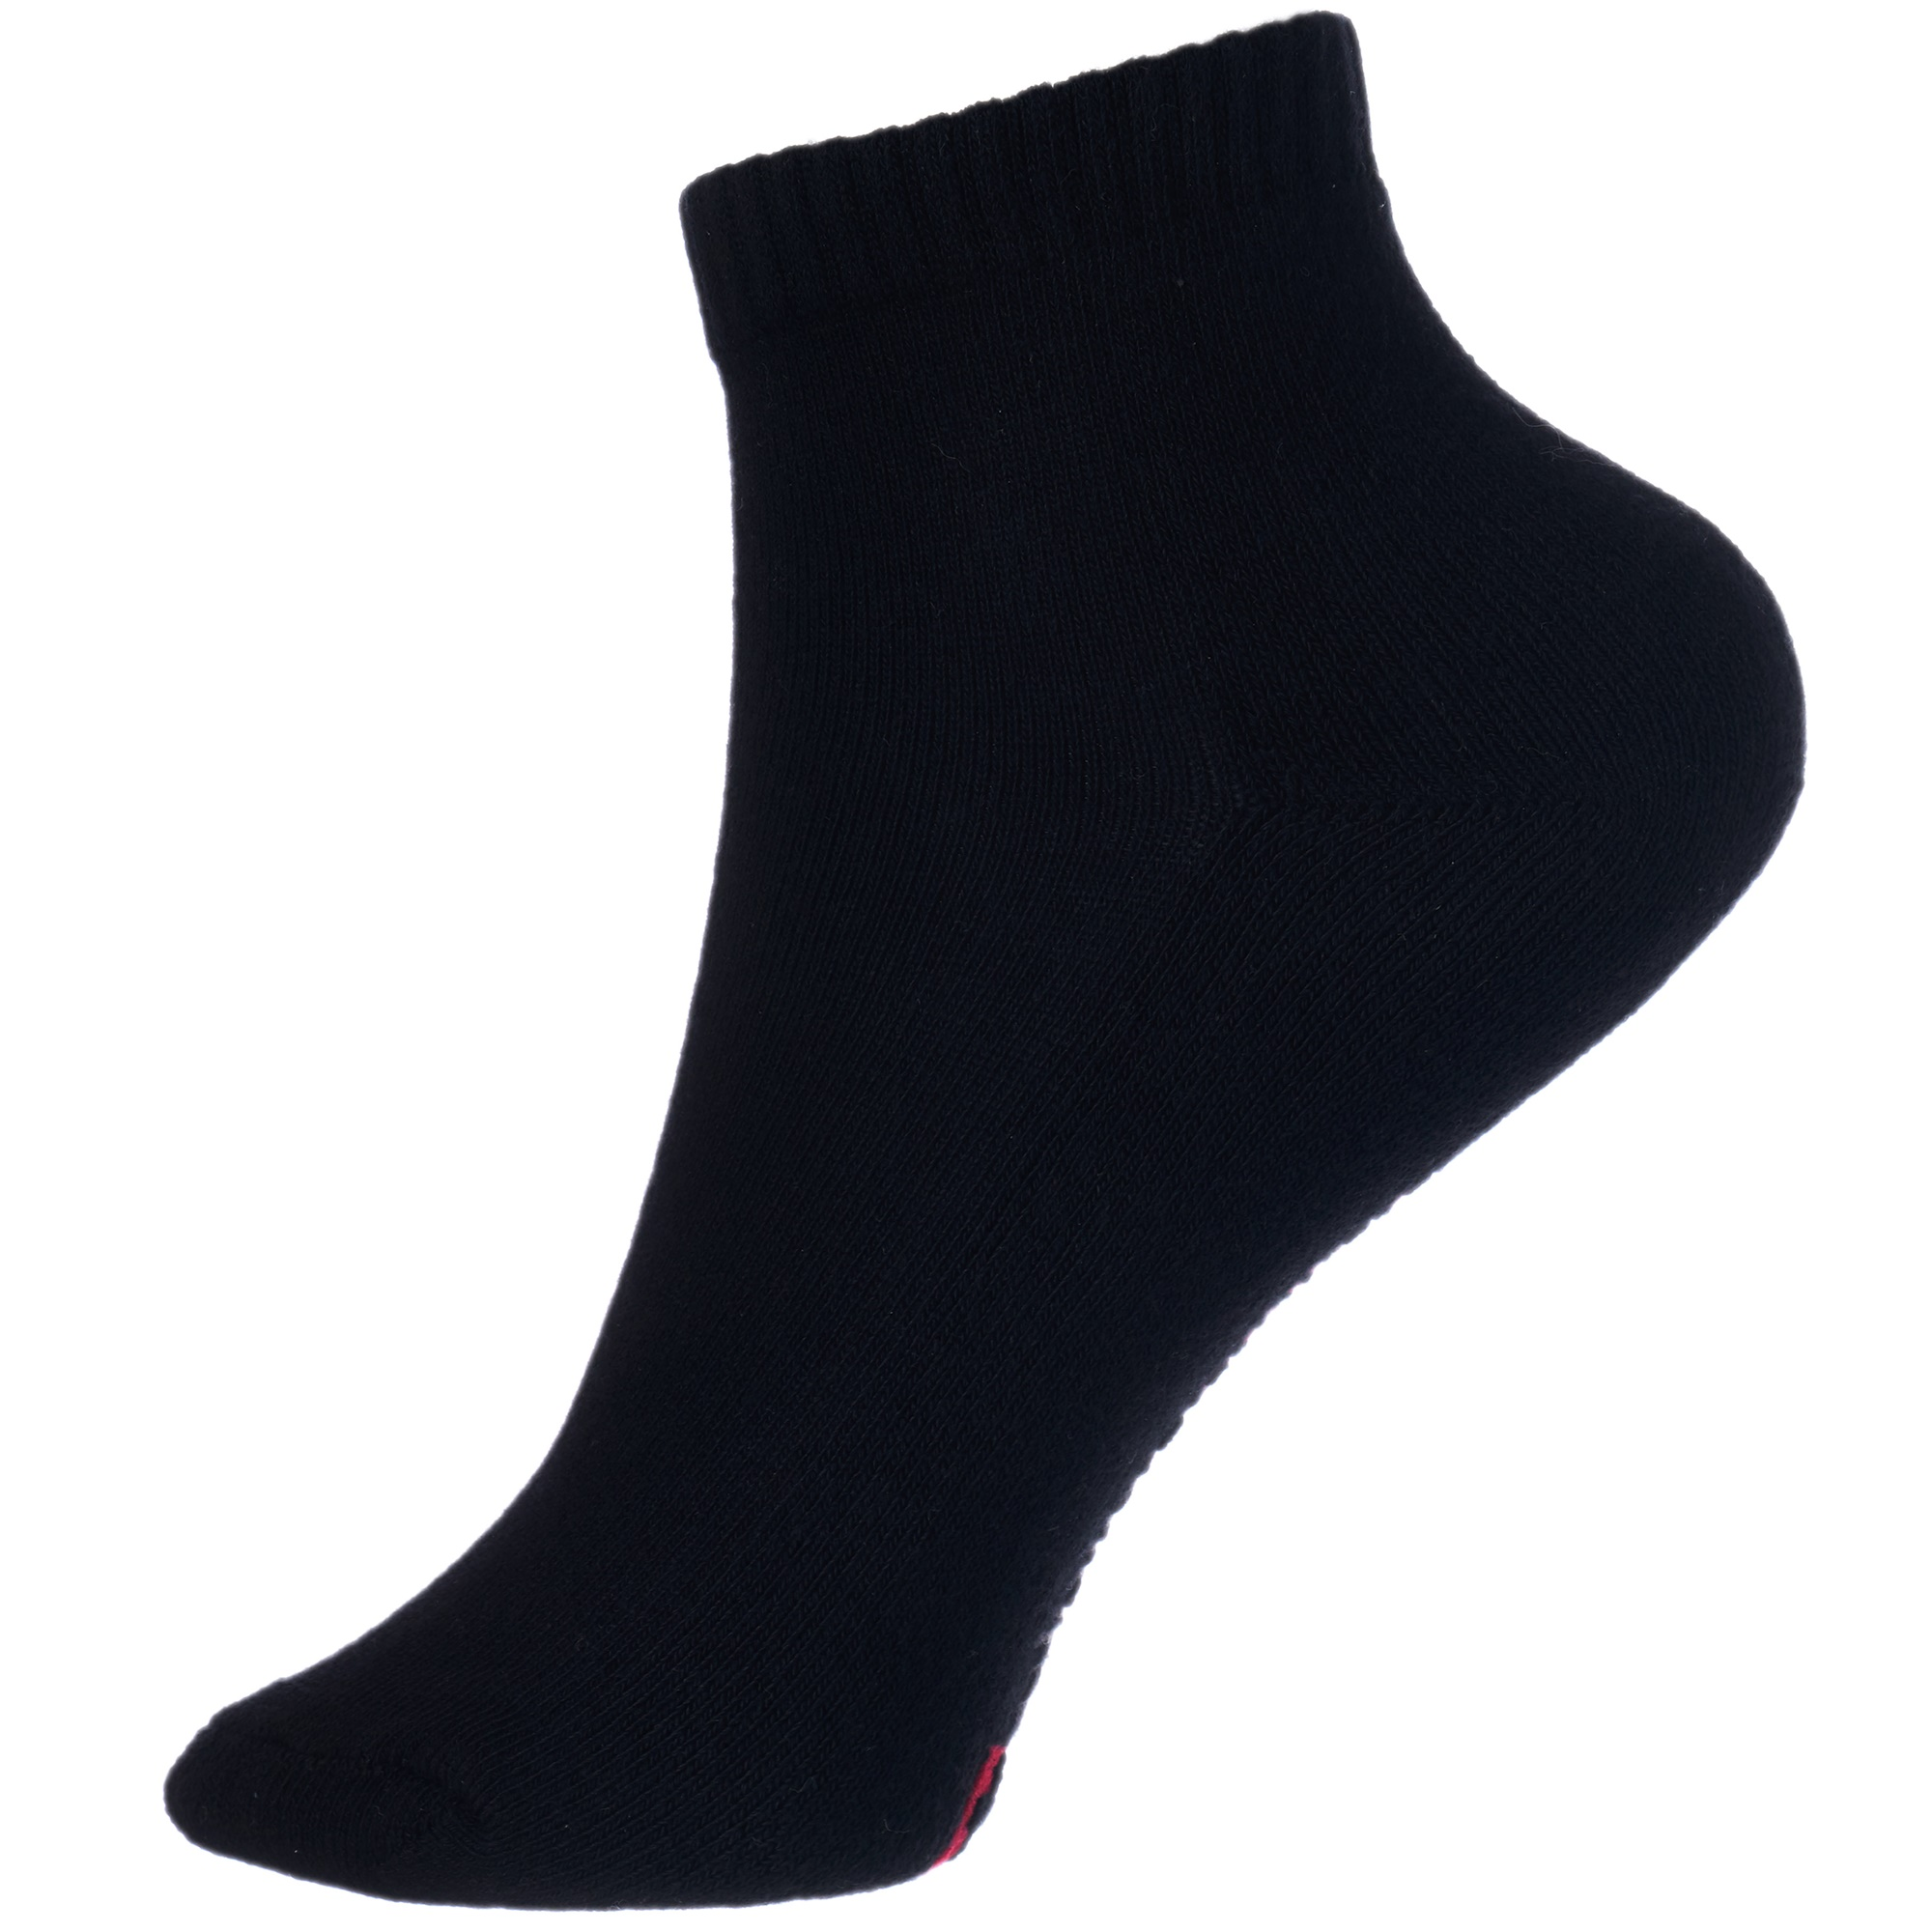 Alpine-Swiss-Mens-8-Pack-Ankle-Socks-Low-Cut-Cotton-Athletic-Sock-Shoe-Size-6-12 thumbnail 18